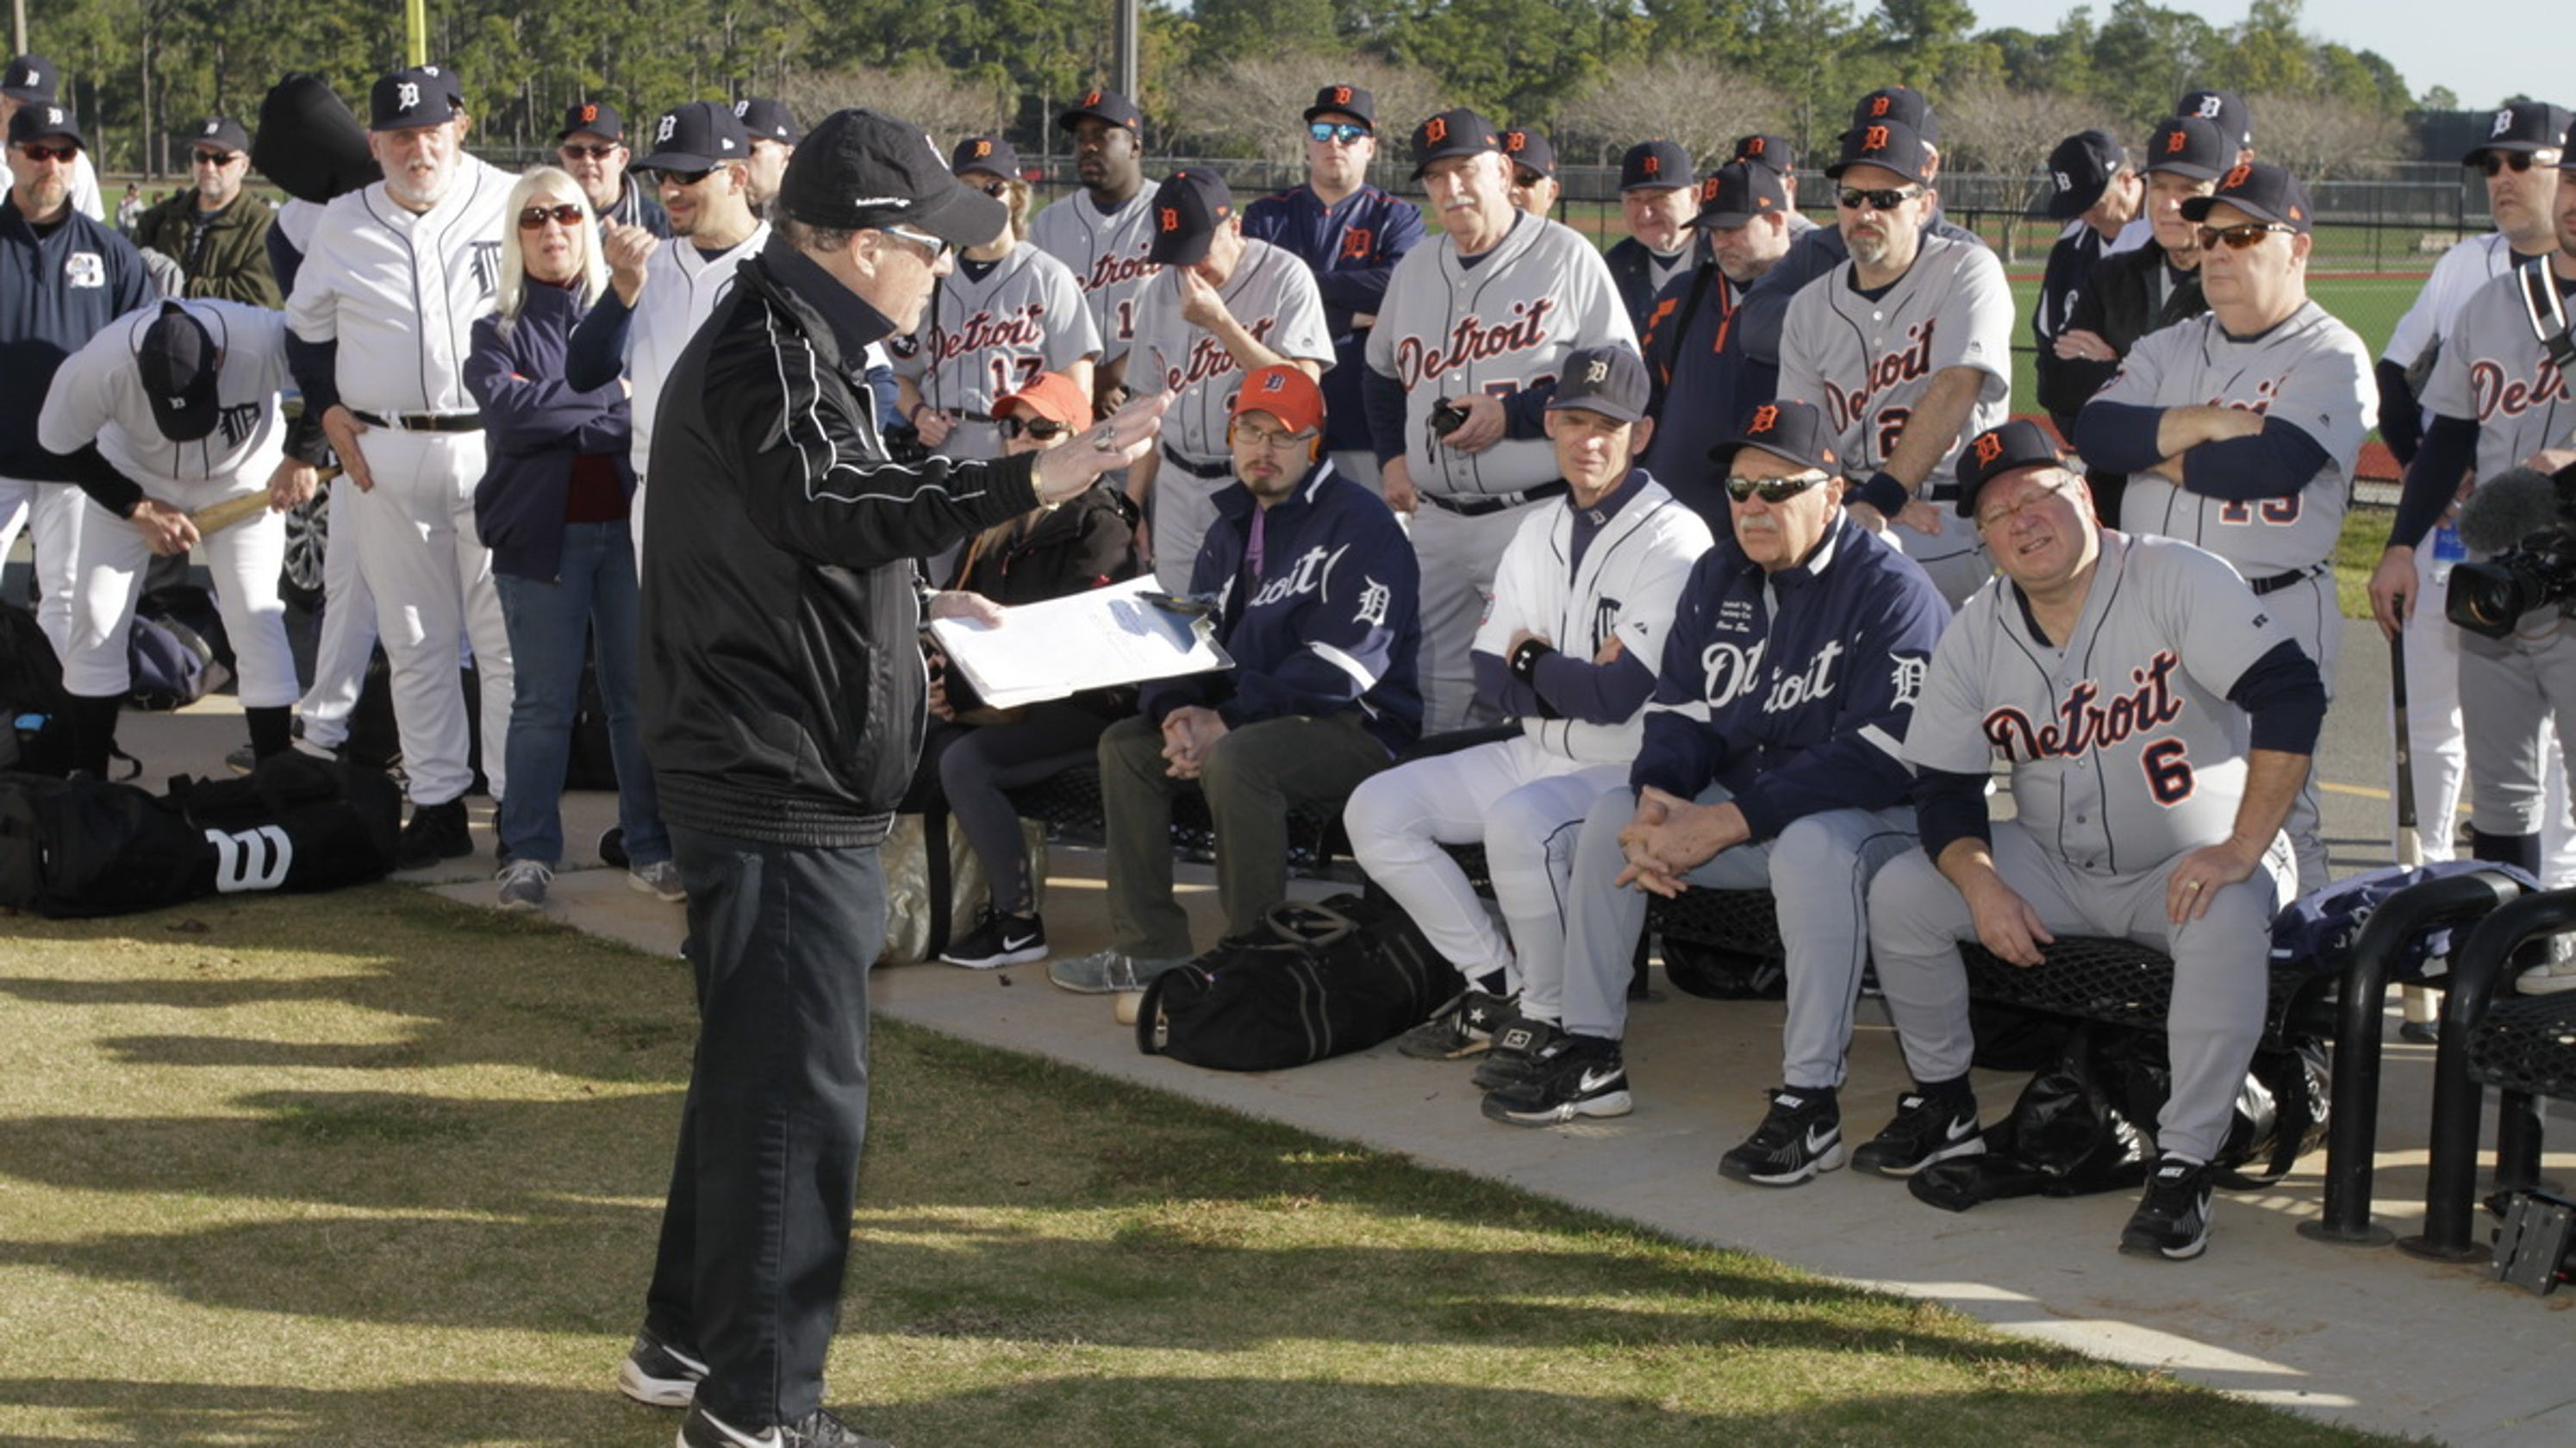 b360f6bbda3 I went to Detroit Tigers fantasy camp. The people are better than my  fastball